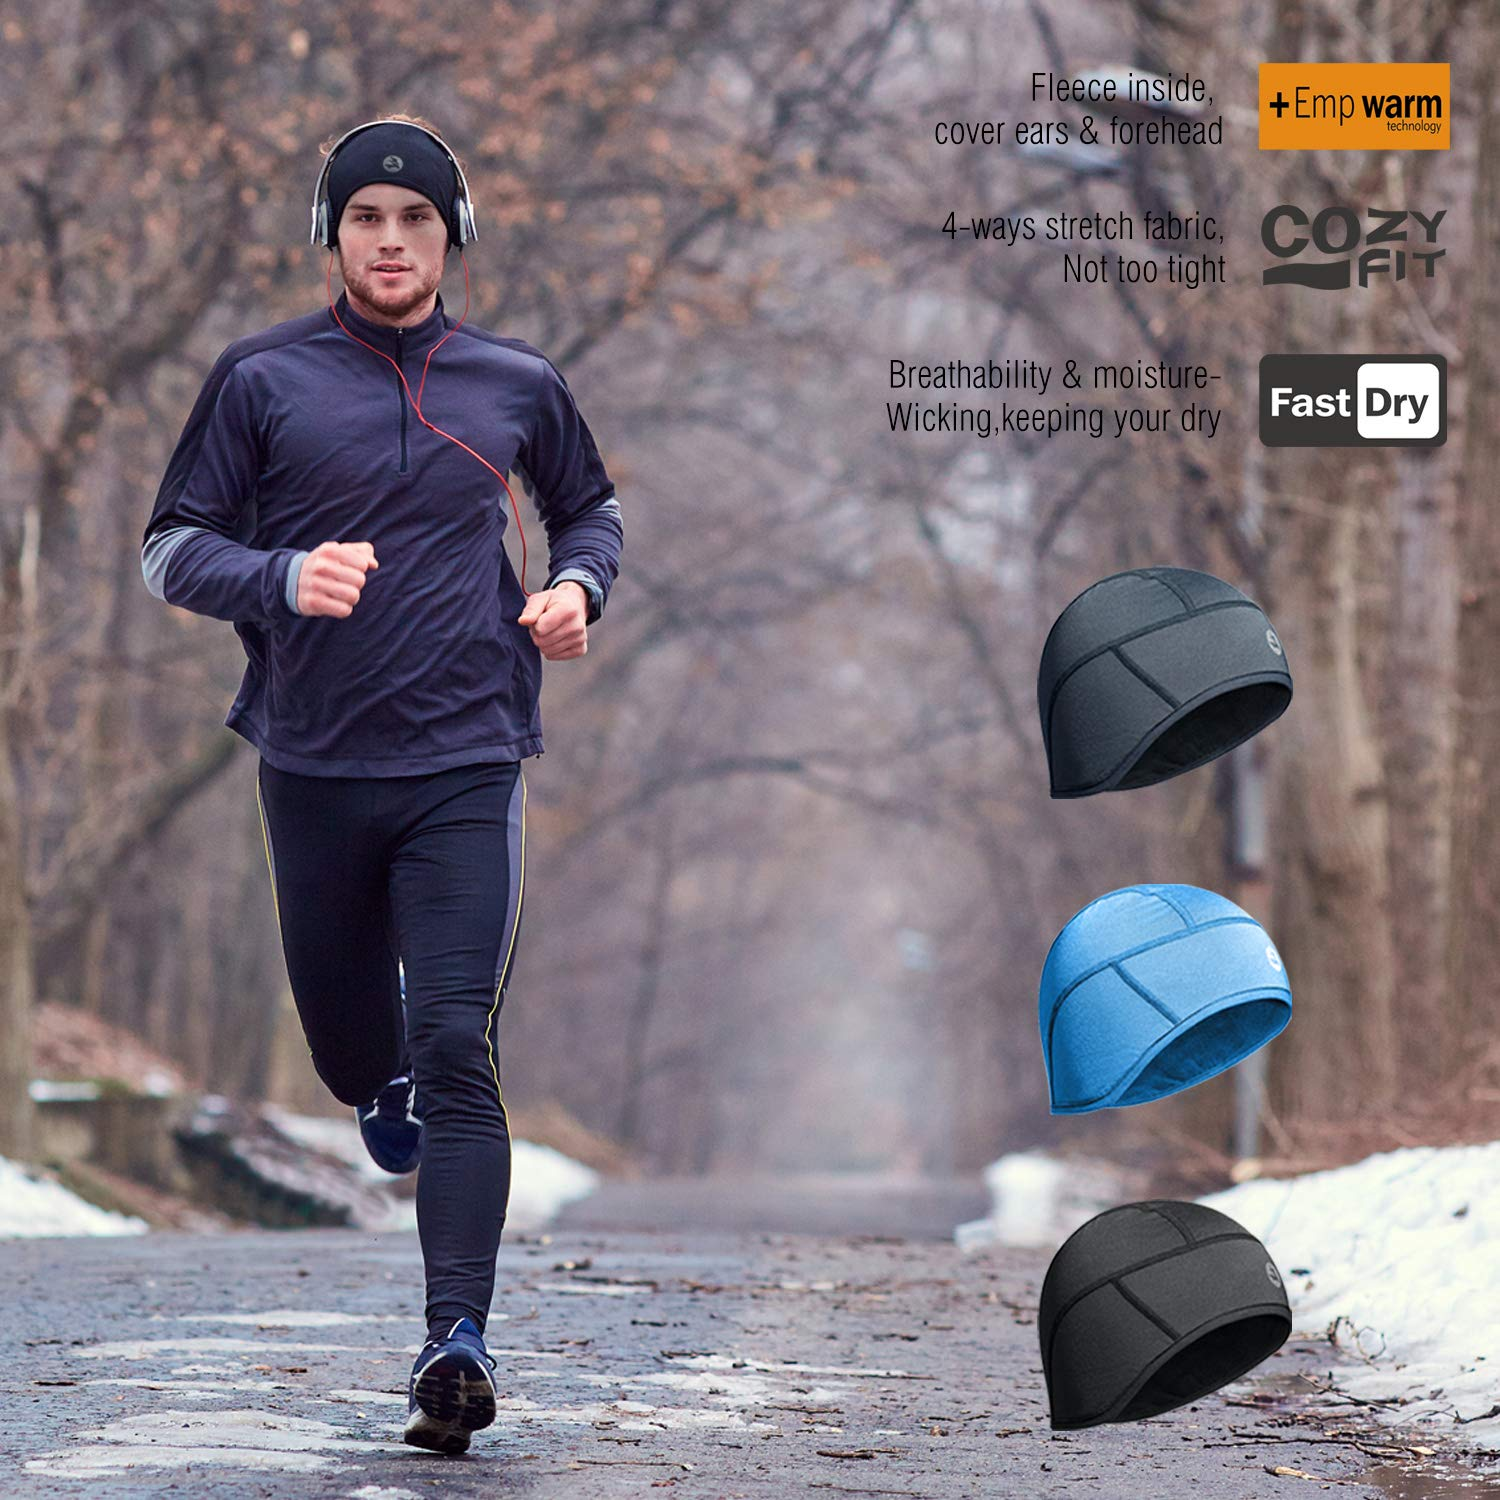 Empirelion Thermal 6-Panel Cycling Helmet Liner Winter Mid-Weight Running Skull Cap Beanie Hats with Full Ear Covers and Moisture Wicking